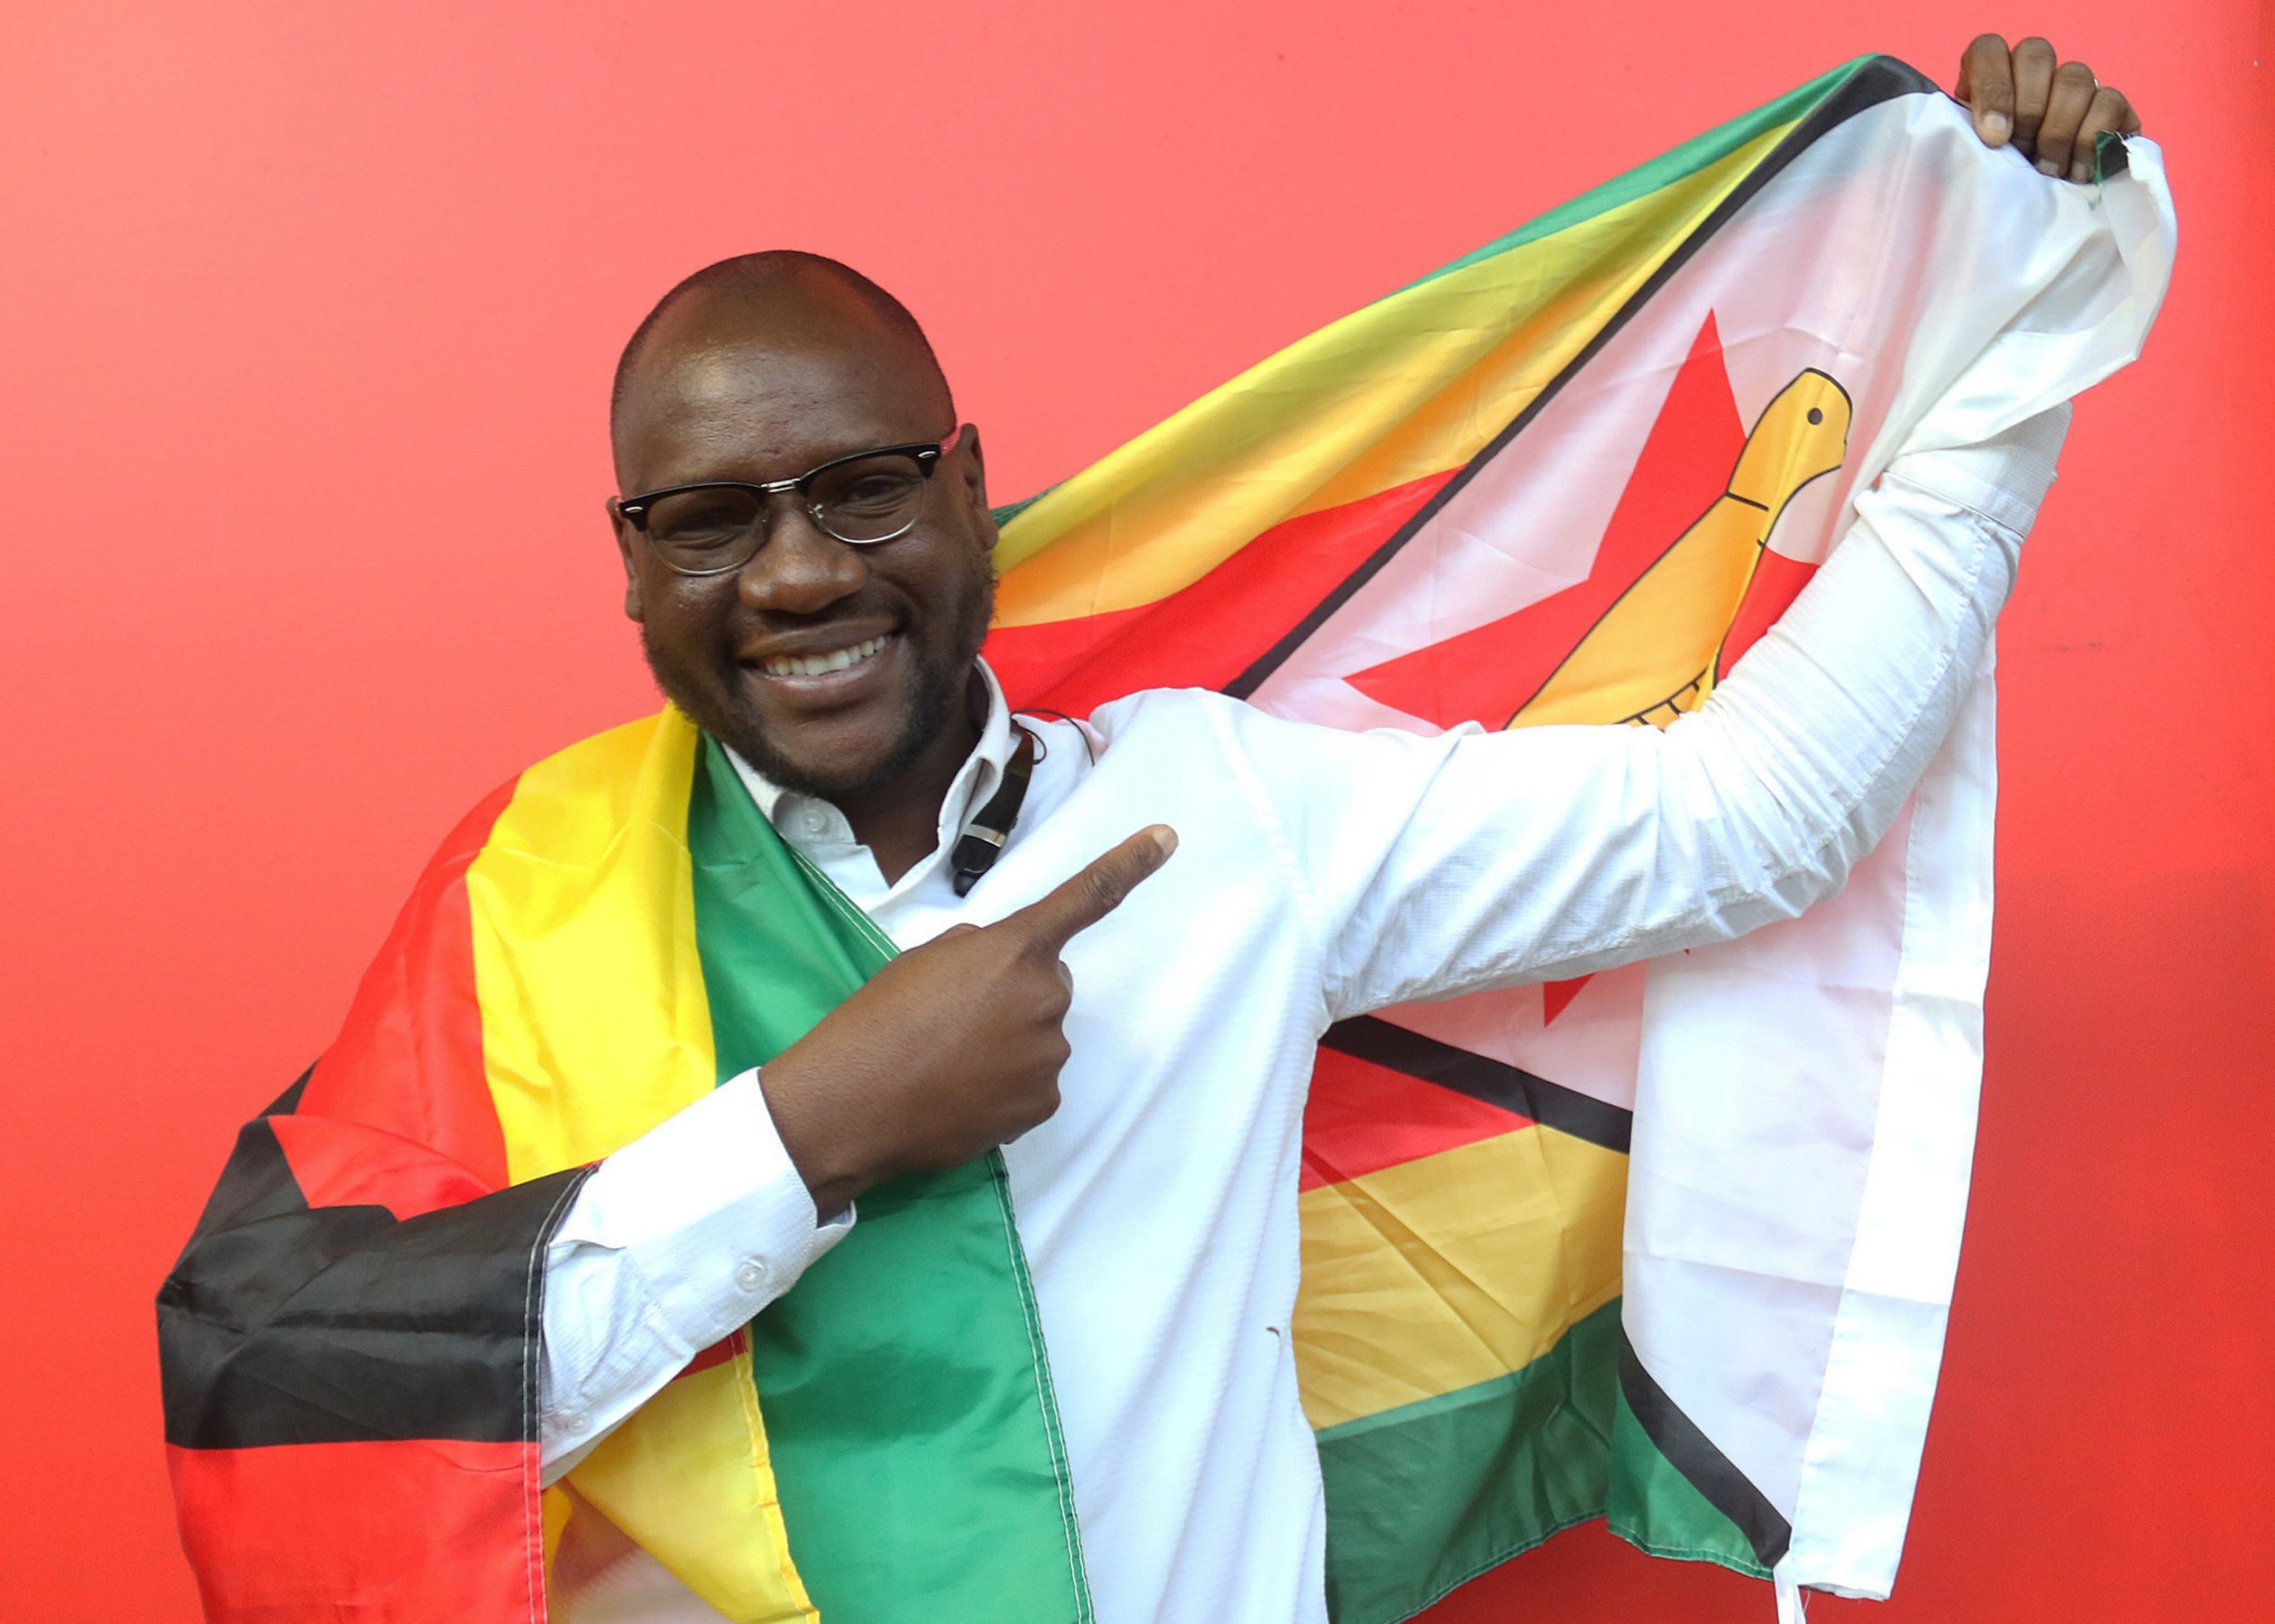 FILE - In this Tuesday May 3, 2016 file photo, shows Evans Mawarire, a young pastor, posing with a Zimbabwean flag in Harare, Zimbabwe. Zimbabwe police have charged Mawarire on Tuesday July 12, 2016, with inciting violence and disturbing the peace. (AP Photo/Tsvangirayi Mukwazhi, File)